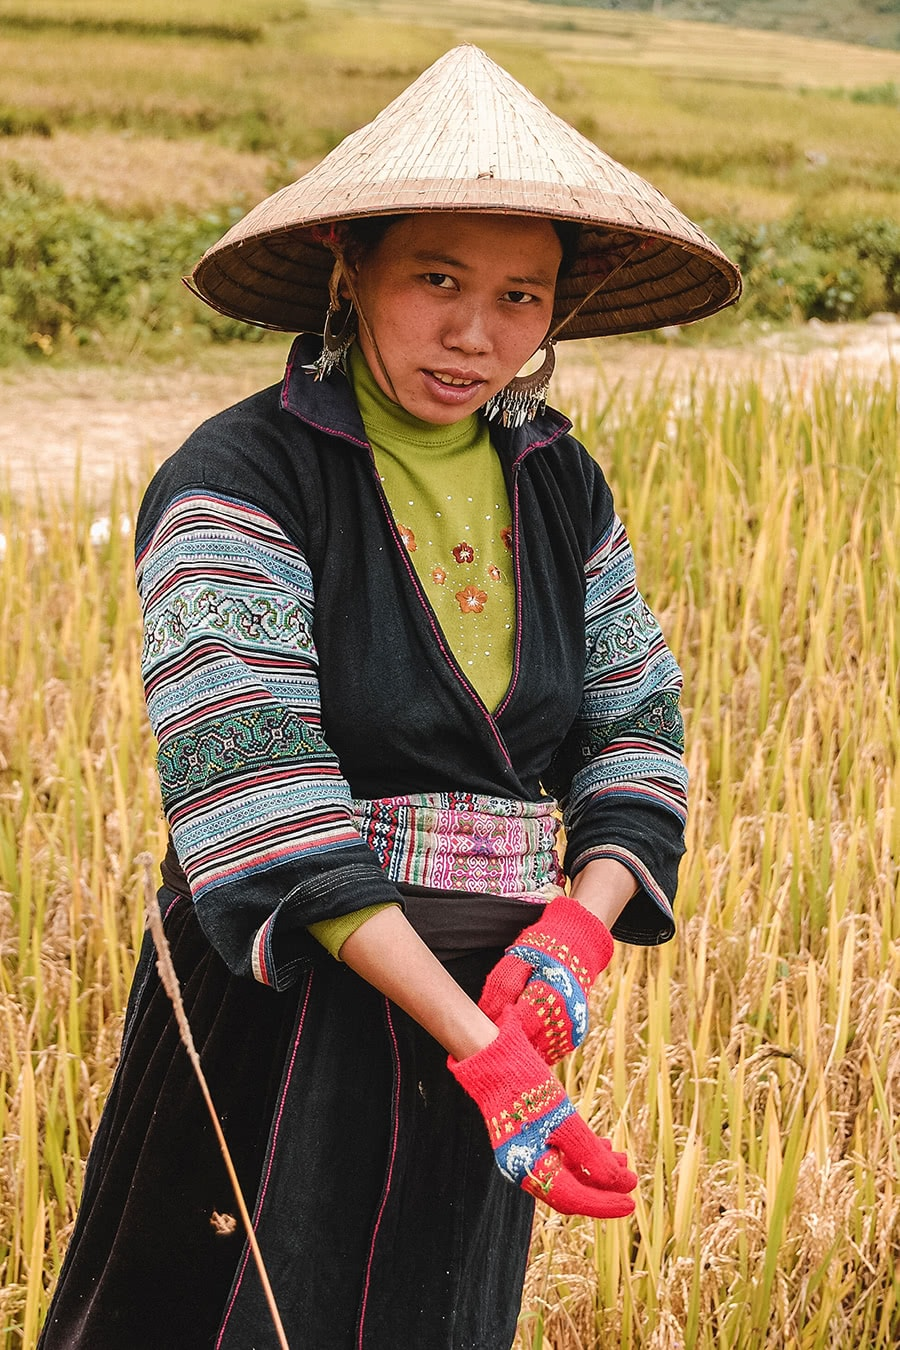 A Vietnamese woman working in the rice field in Sapa.